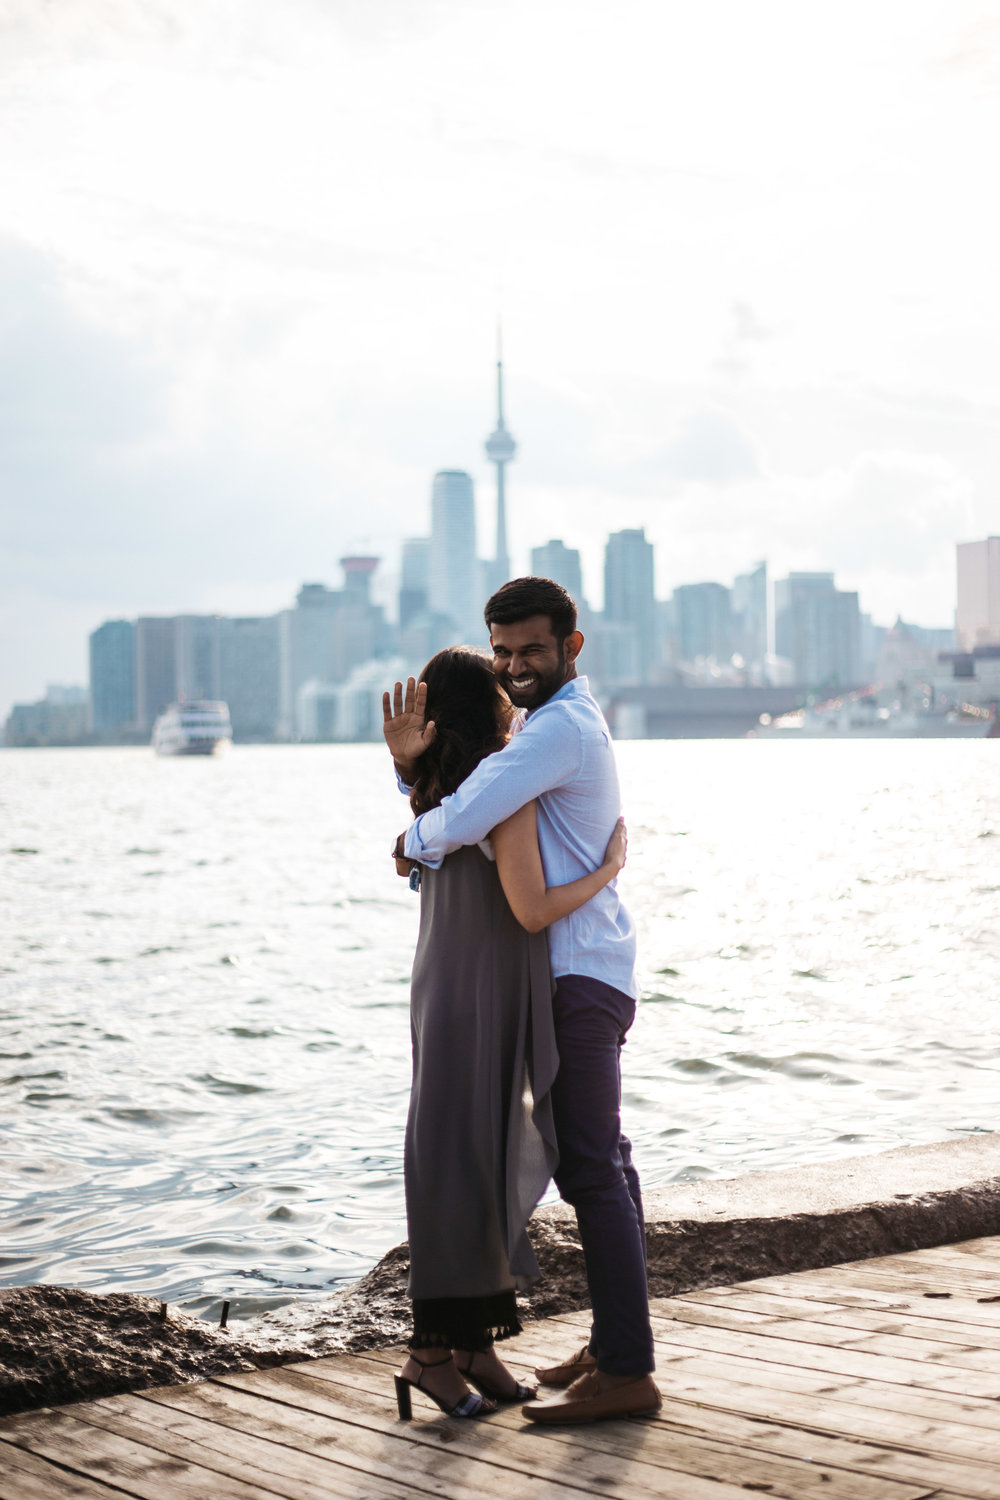 Proposal photography - you the best photography-61.jpg